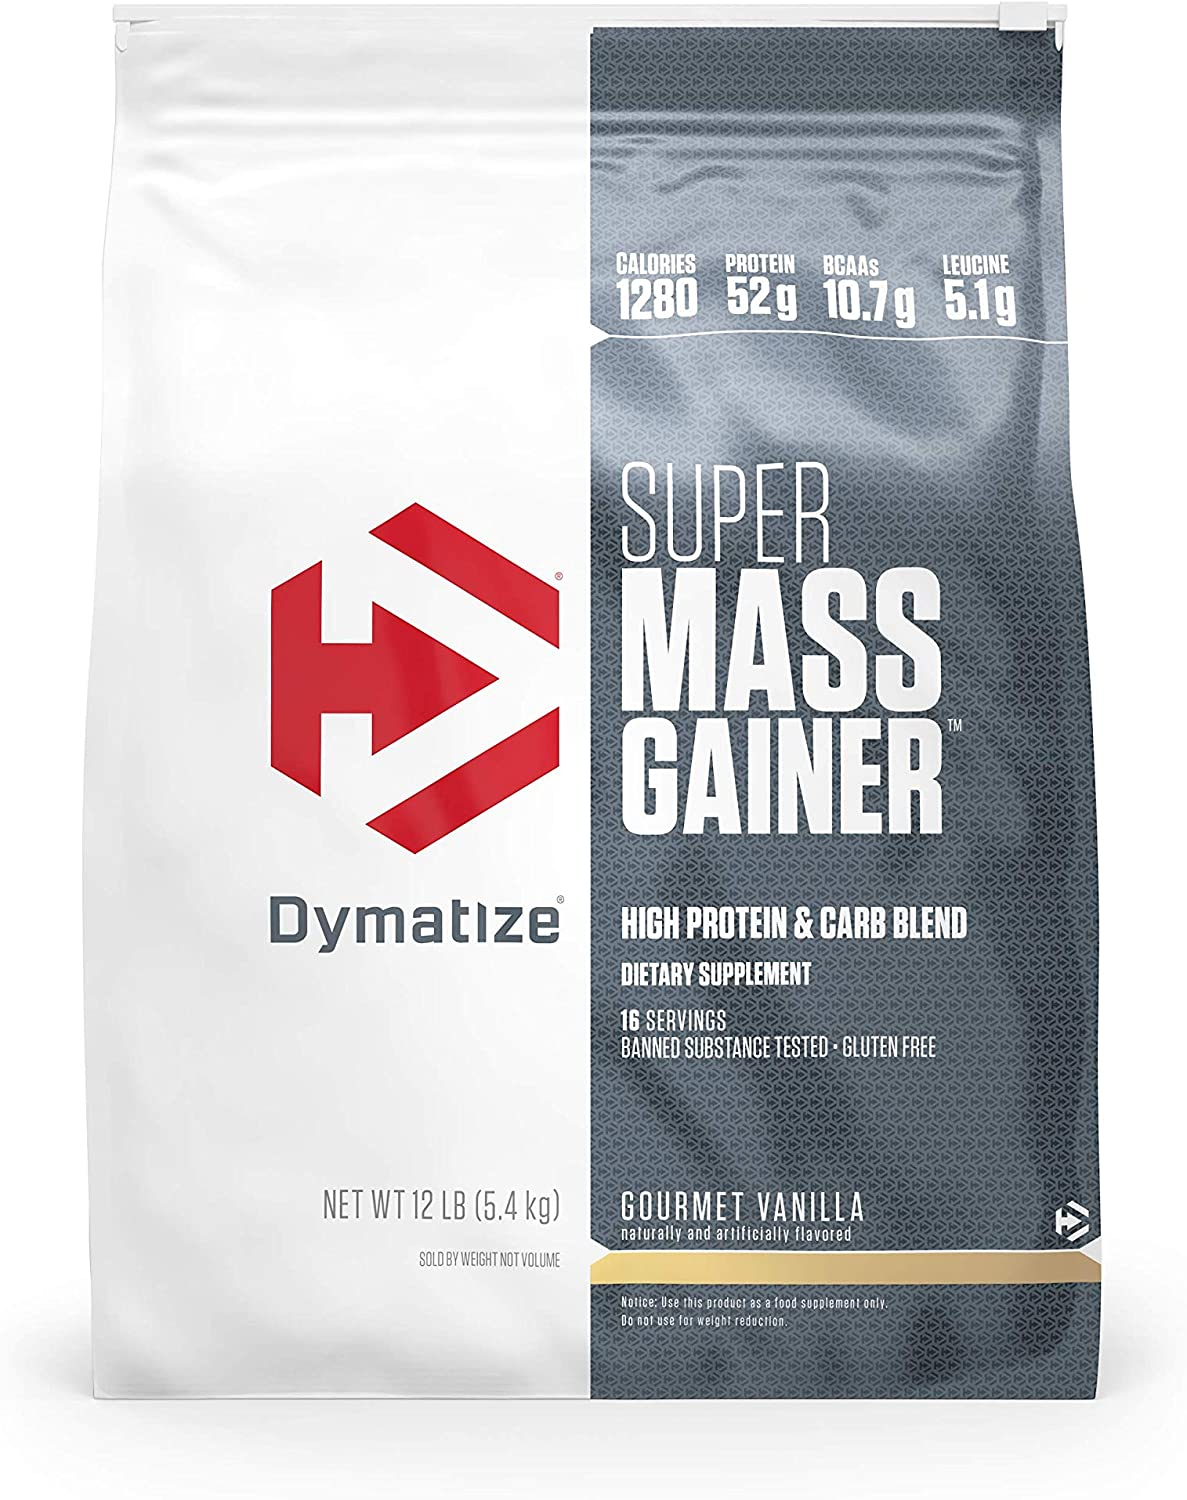 Why is Dymatize Super Mass Gainer worth the money?